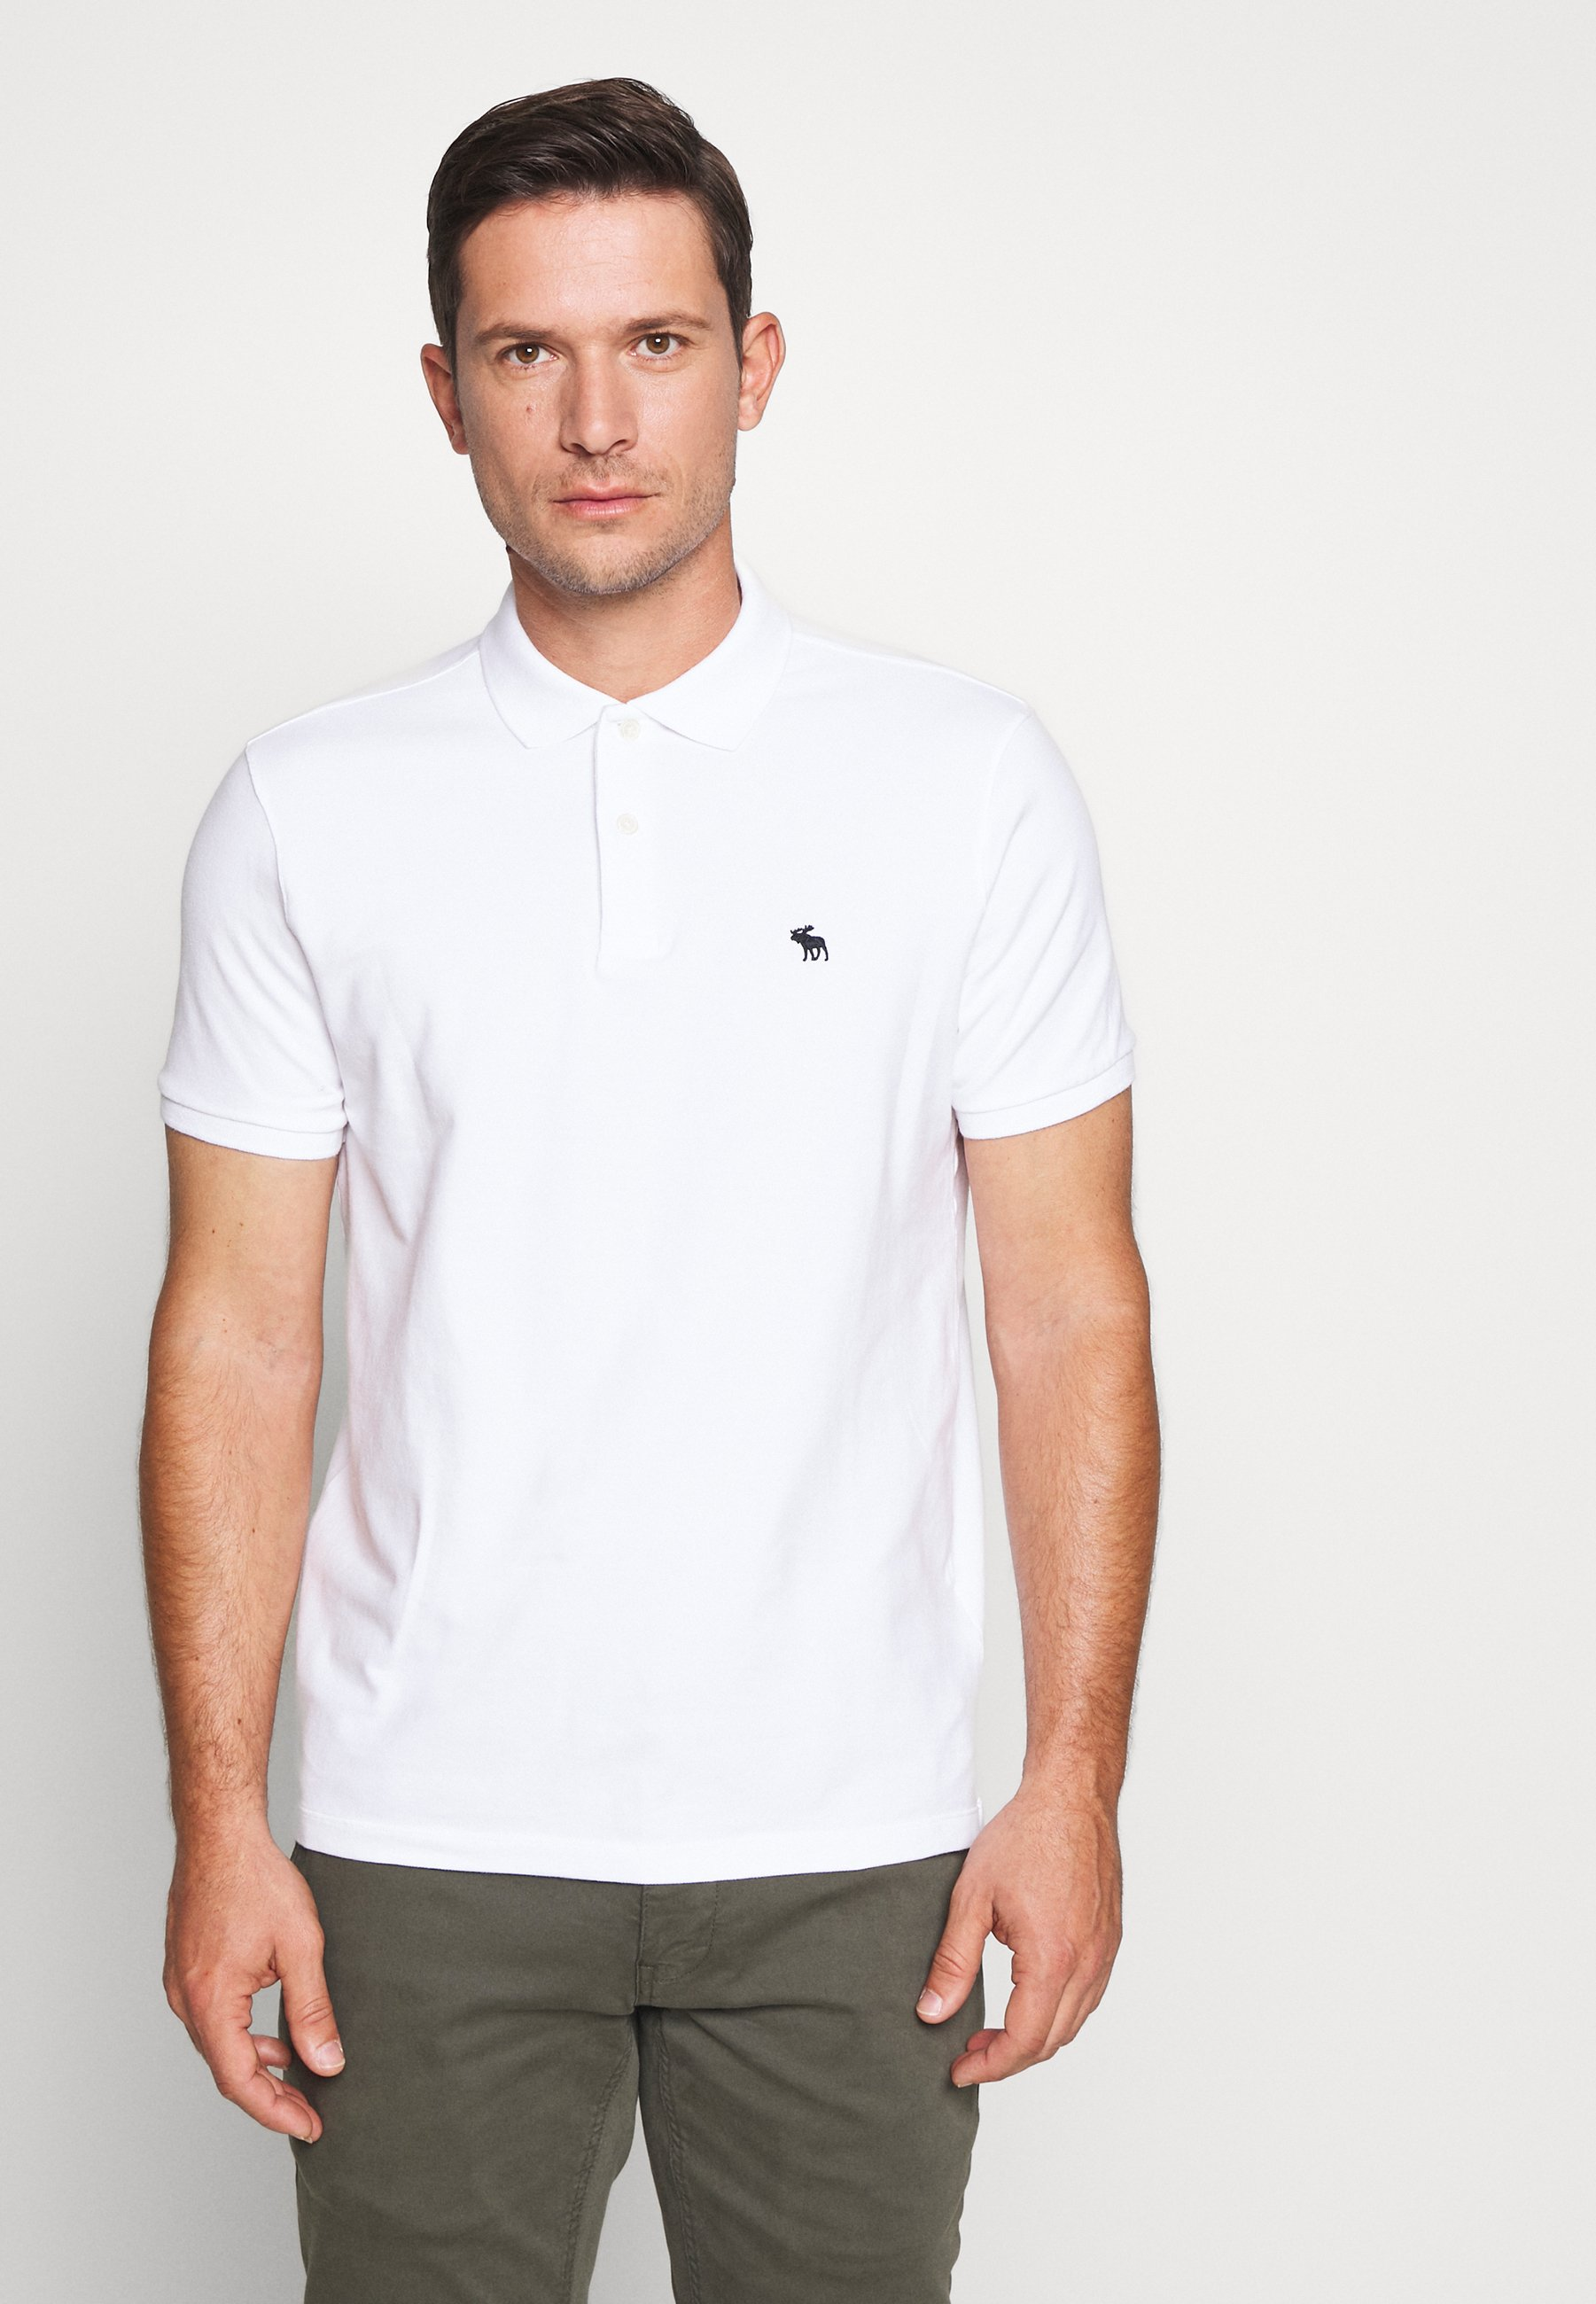 Abercrombie & Fitch Multipack 3 Pack - Poloshirt White/ Sepia Rose/ Blue Heather